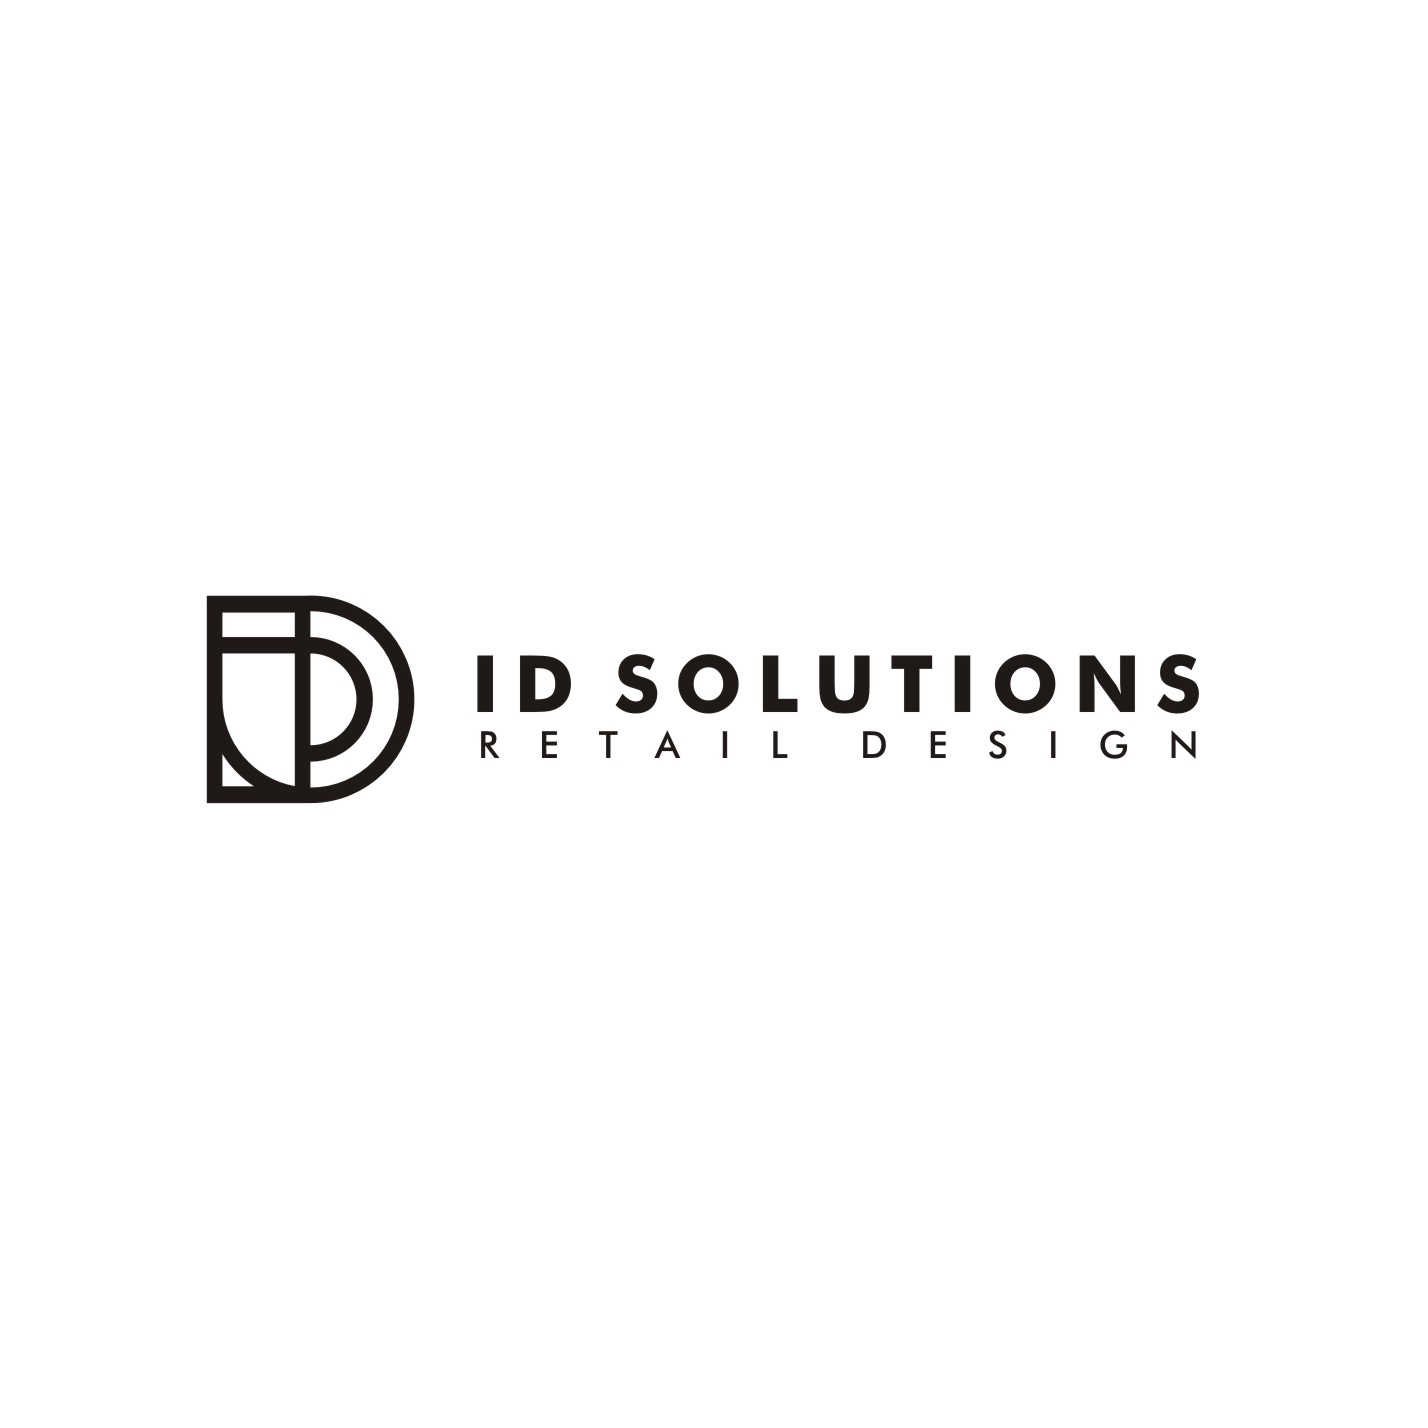 Logo for a company ID Solutions - Architecture Logo